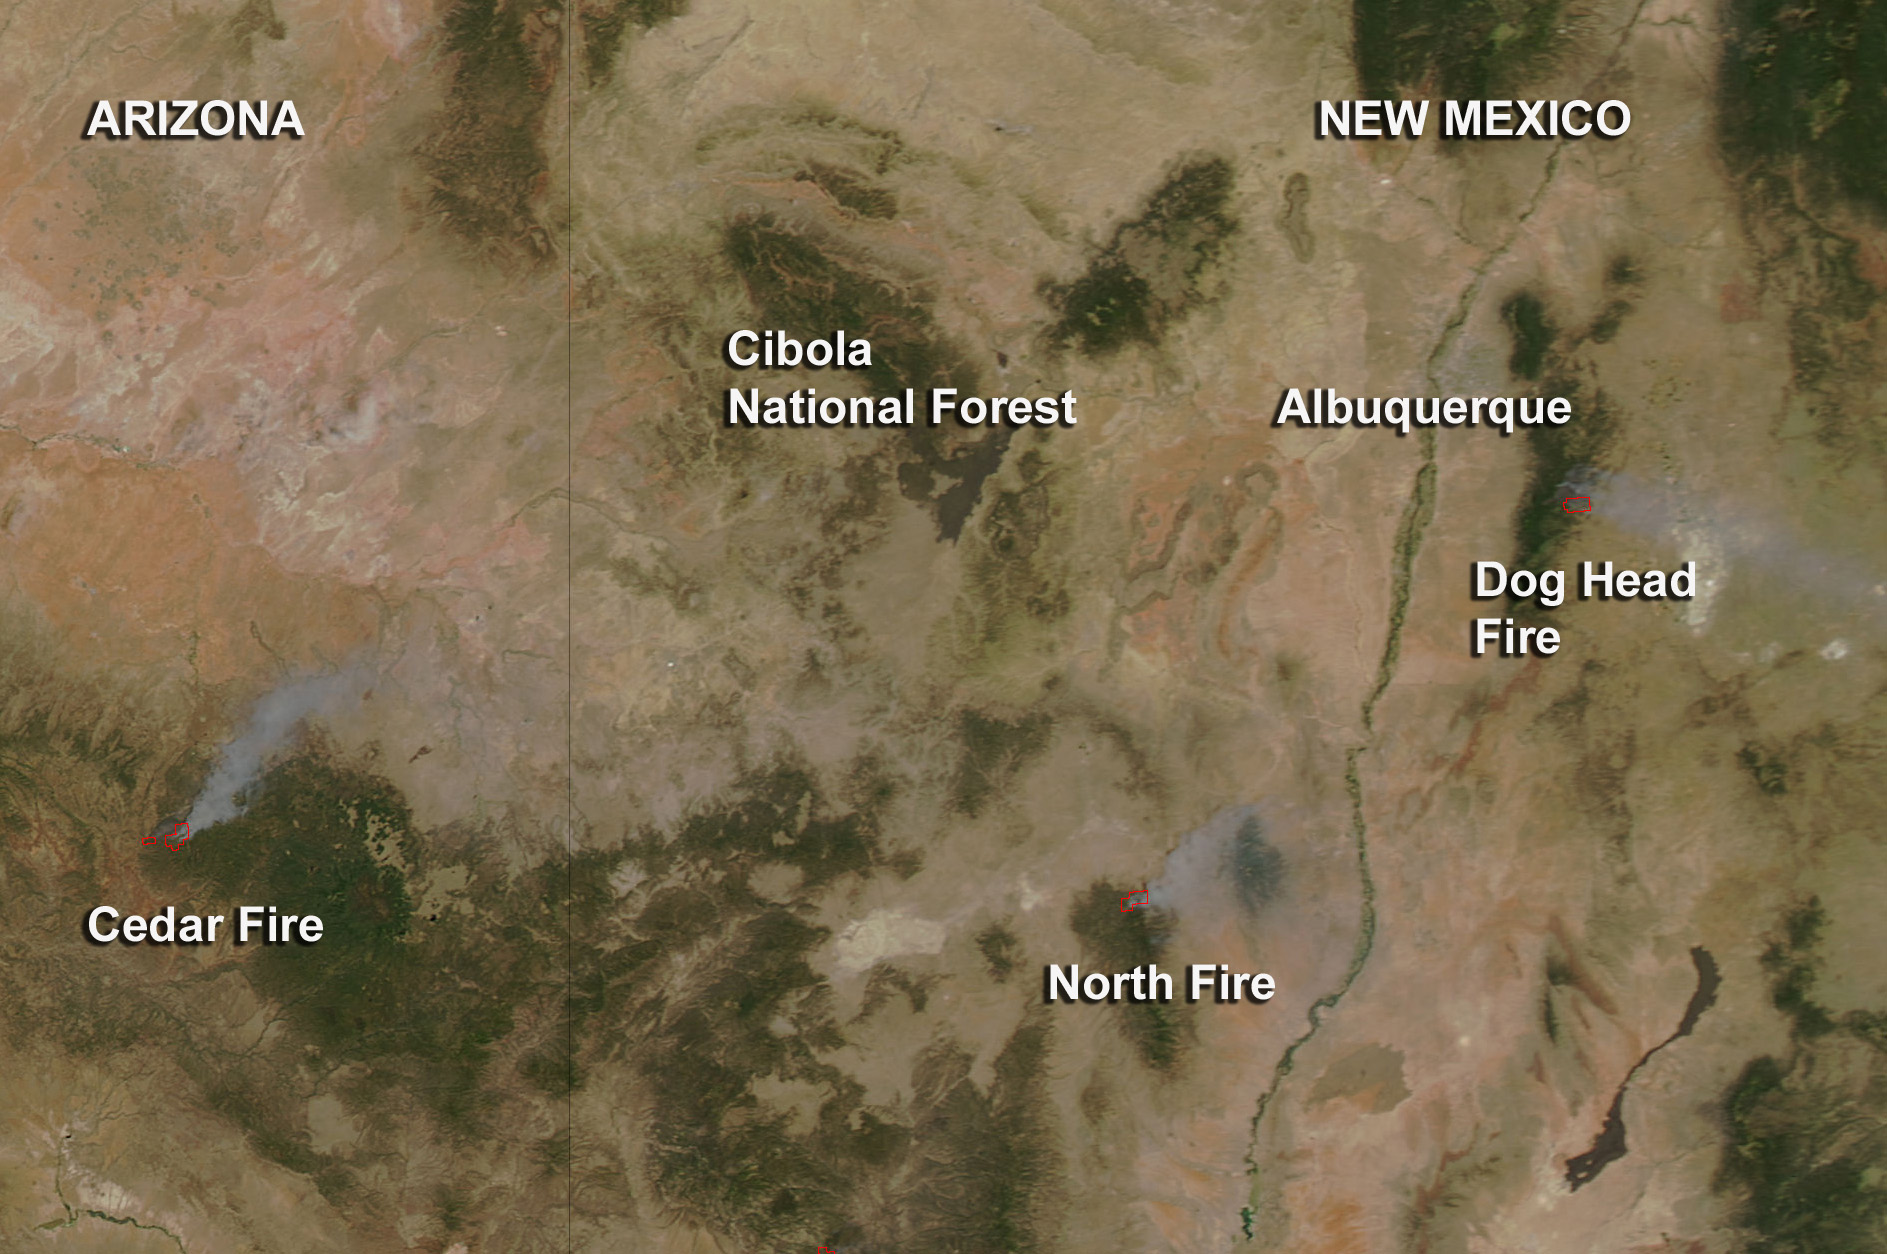 Fires in New Mexico and Arizona